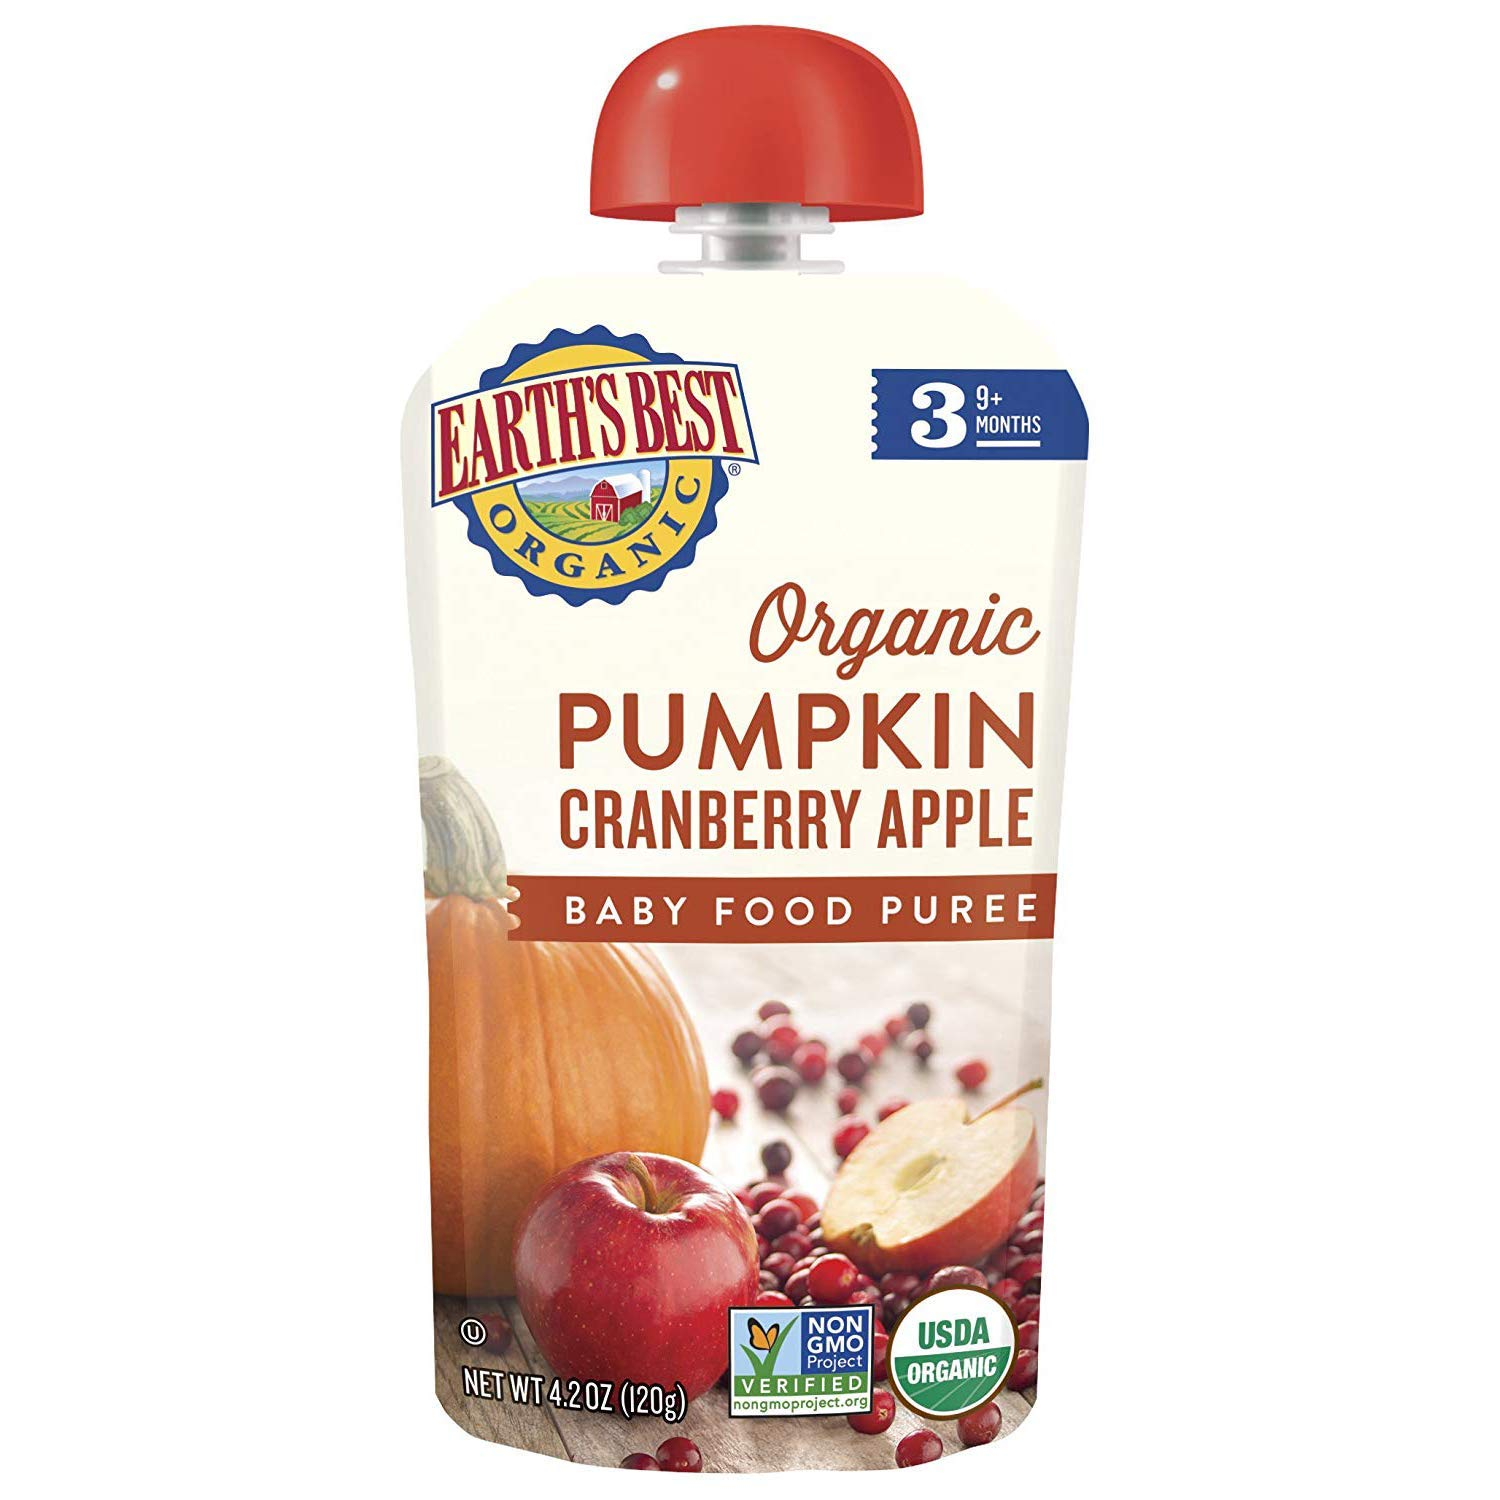 Earth's Best Organic Stage 3 Baby Food, Pumpkin Cranberry Apple, 4.2 Oz Pouch (Pack of 12) (Packaging May Vary)